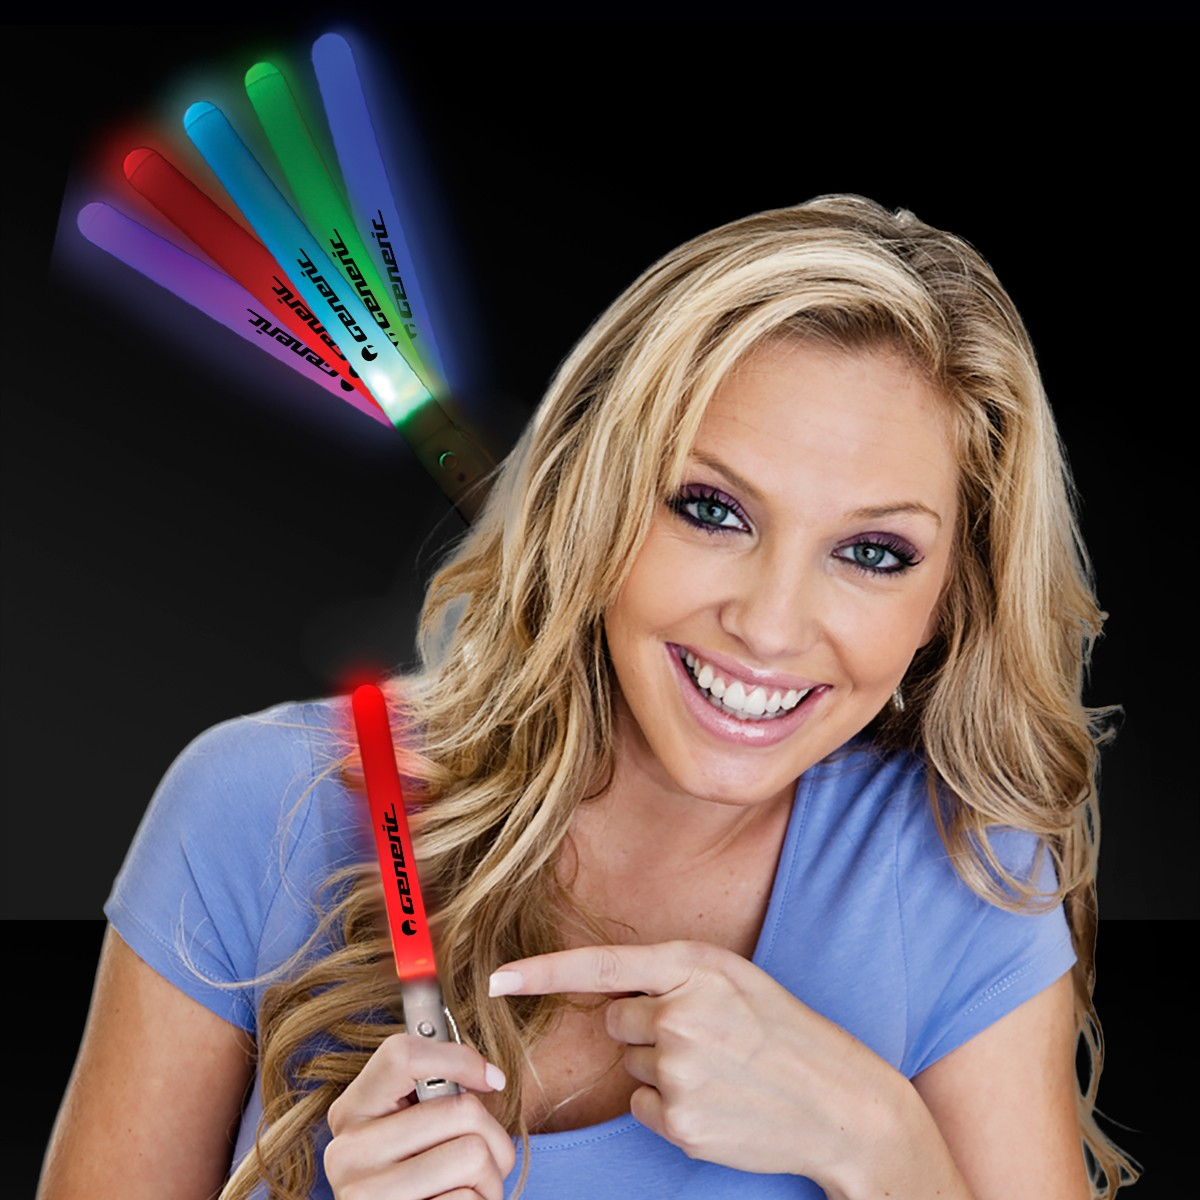 Light Up Rainbow Light Stick - 7 1/2 Inch